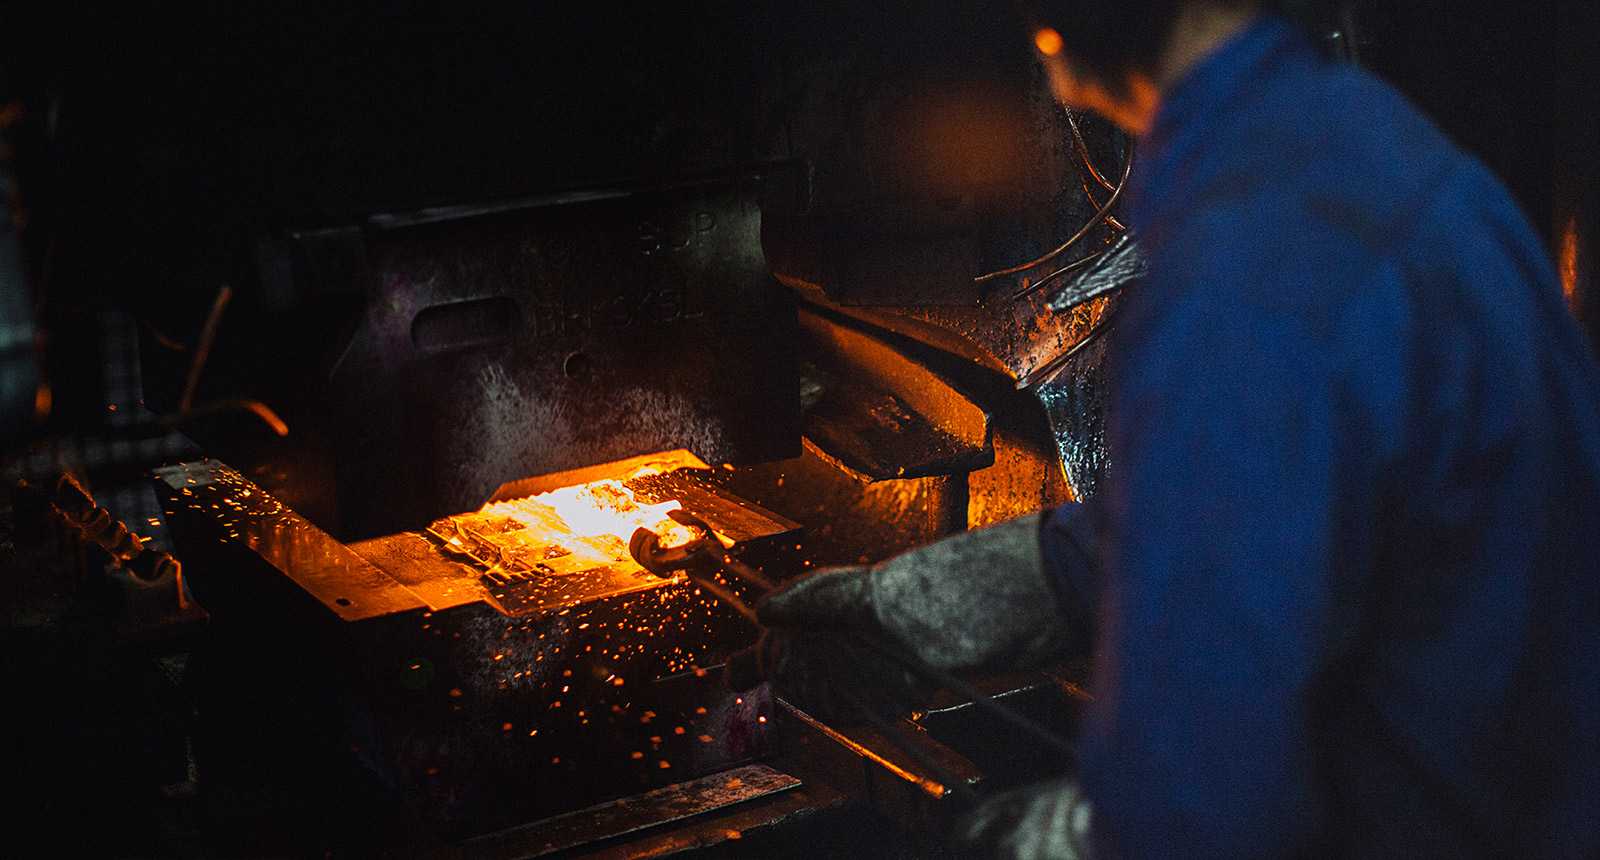 Alcorta forging group